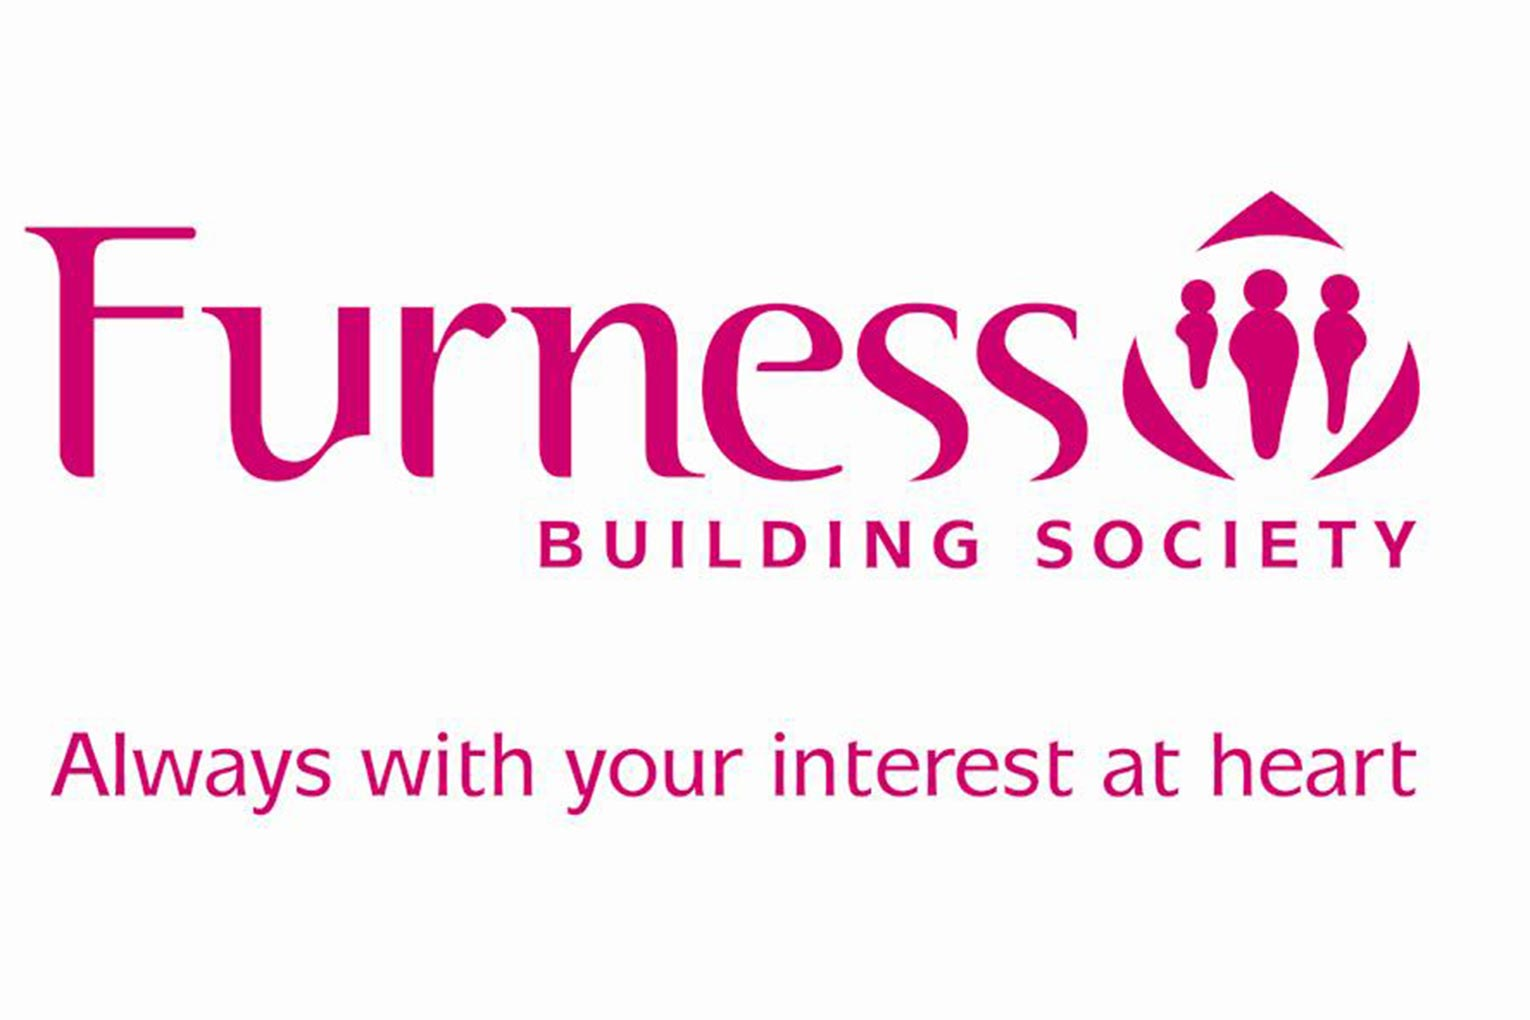 Furness Building Society Buy To Let Mortgages